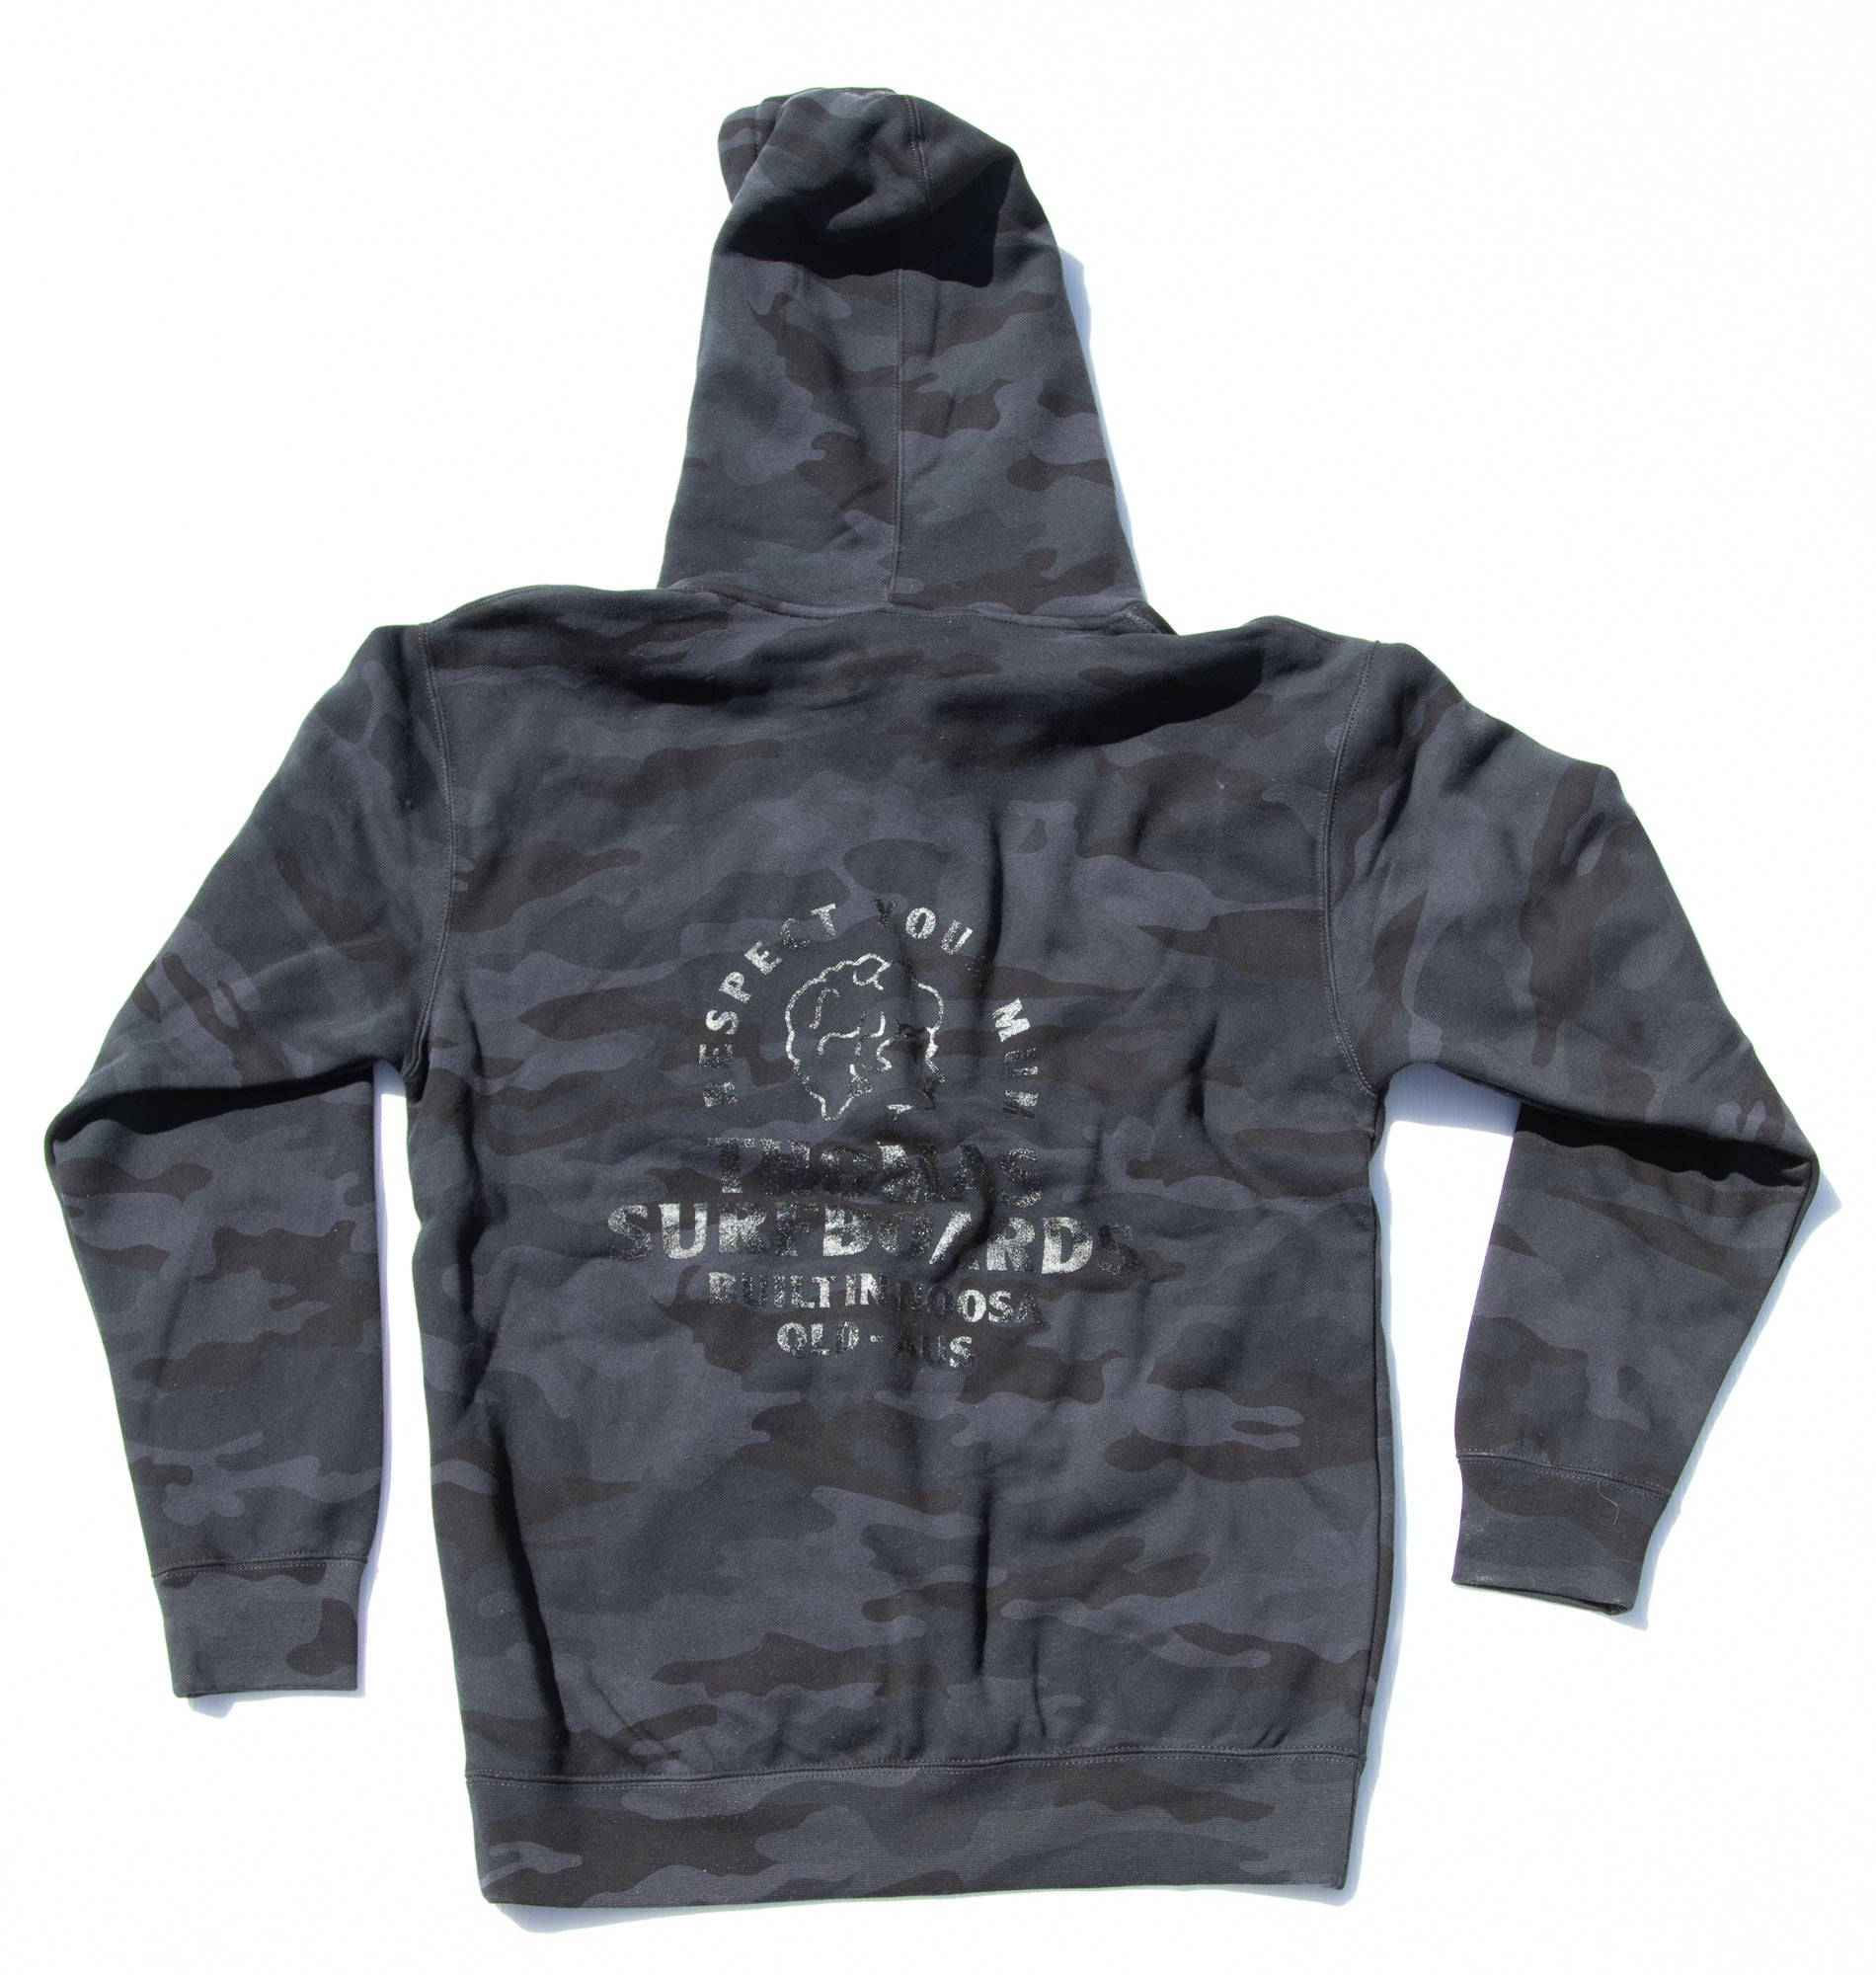 Thomas Girl Head Jumper Black Camo